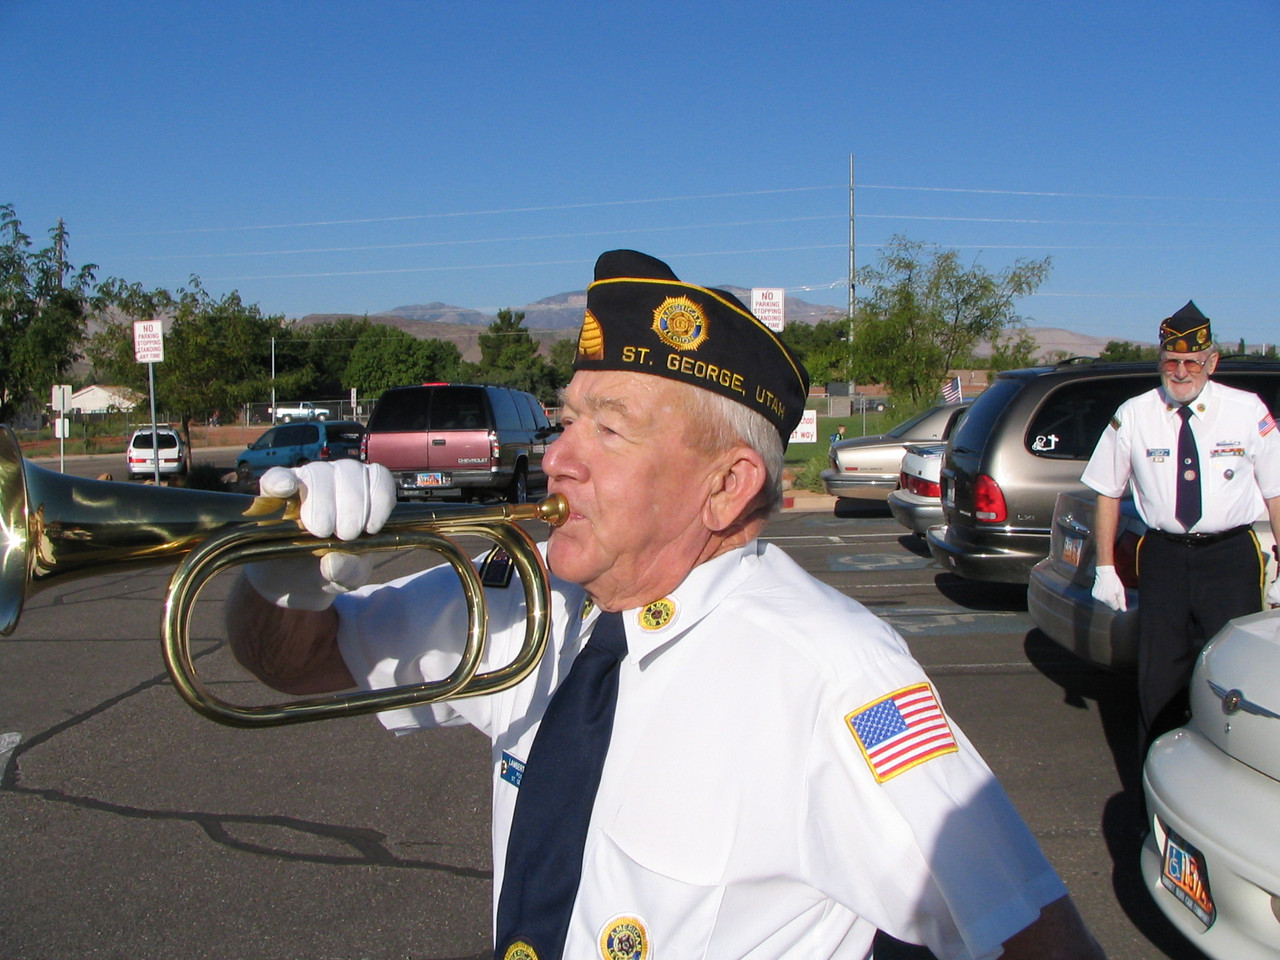 Lambert Jensen, practicing on his bugle.